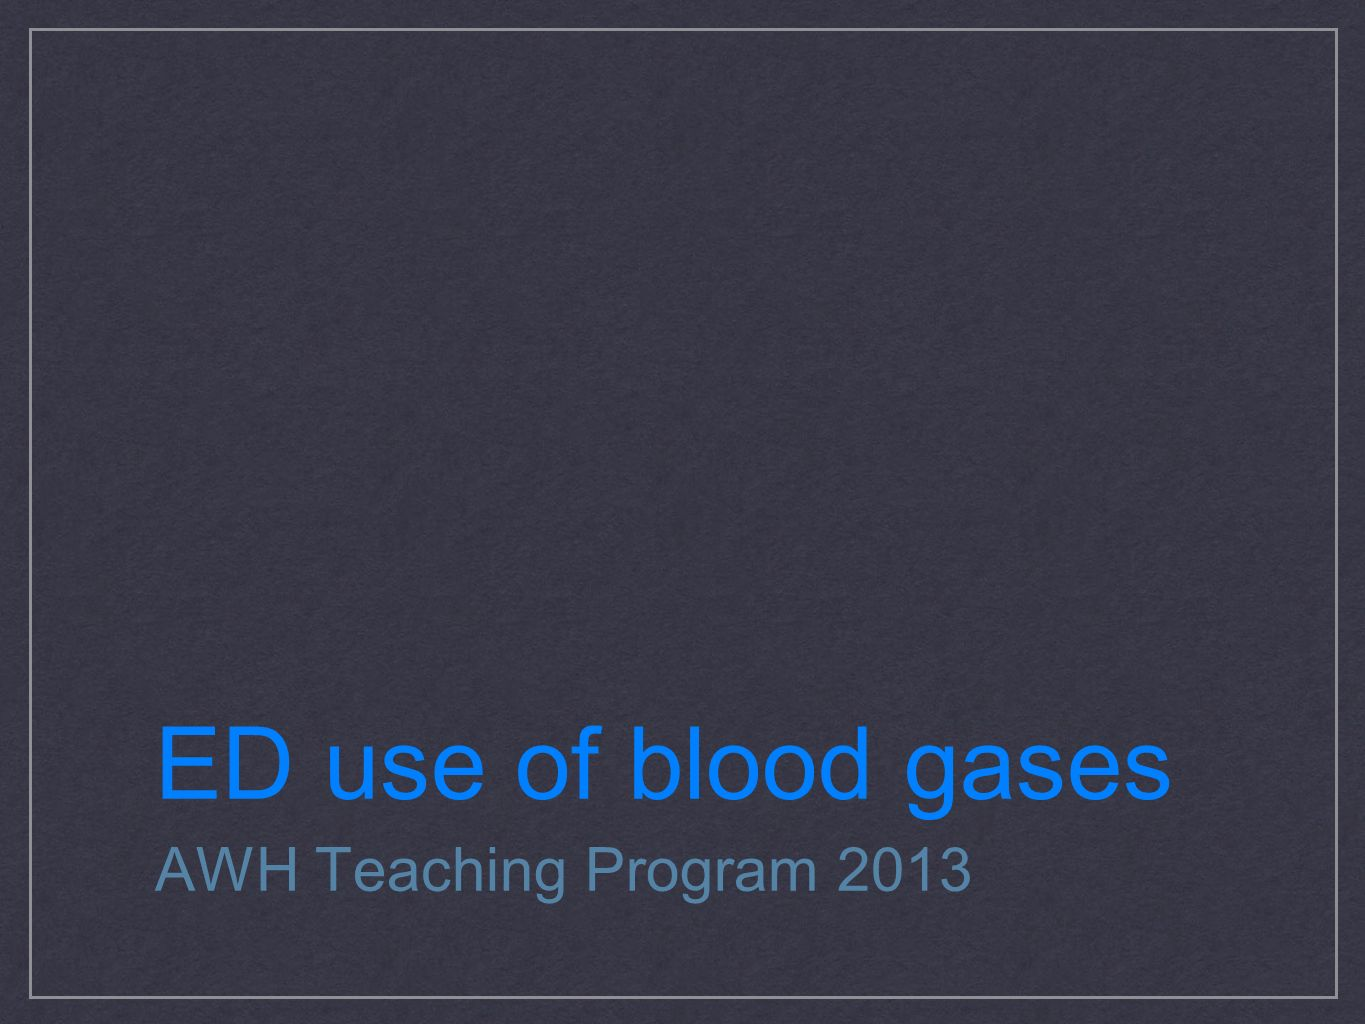 ED use of blood gases AWH Teaching Program 2013